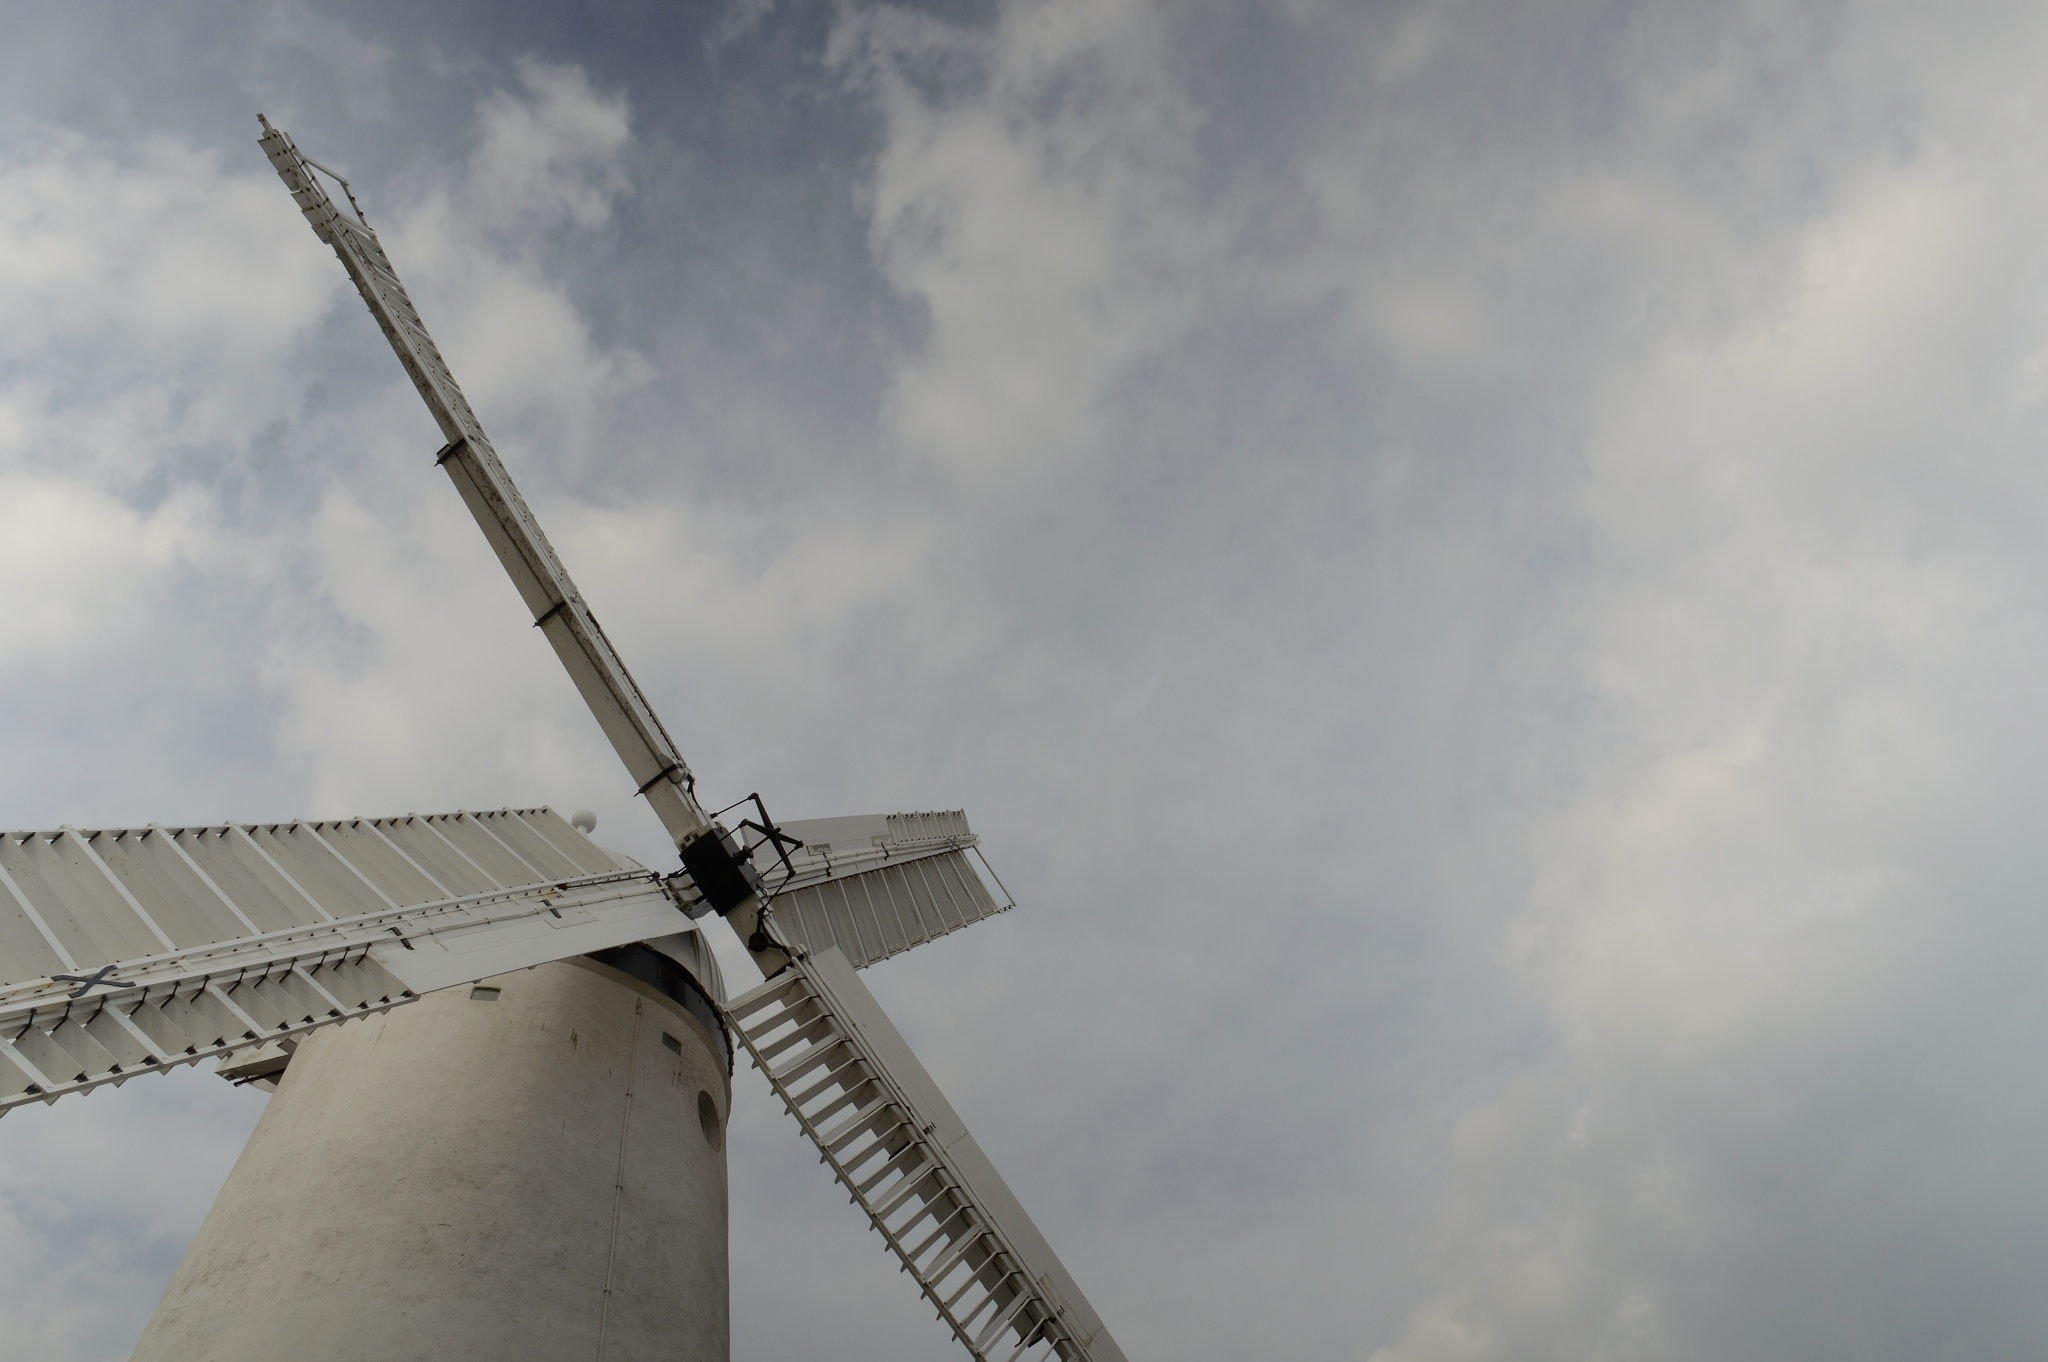 Windmill in Mourning by Chris Clark